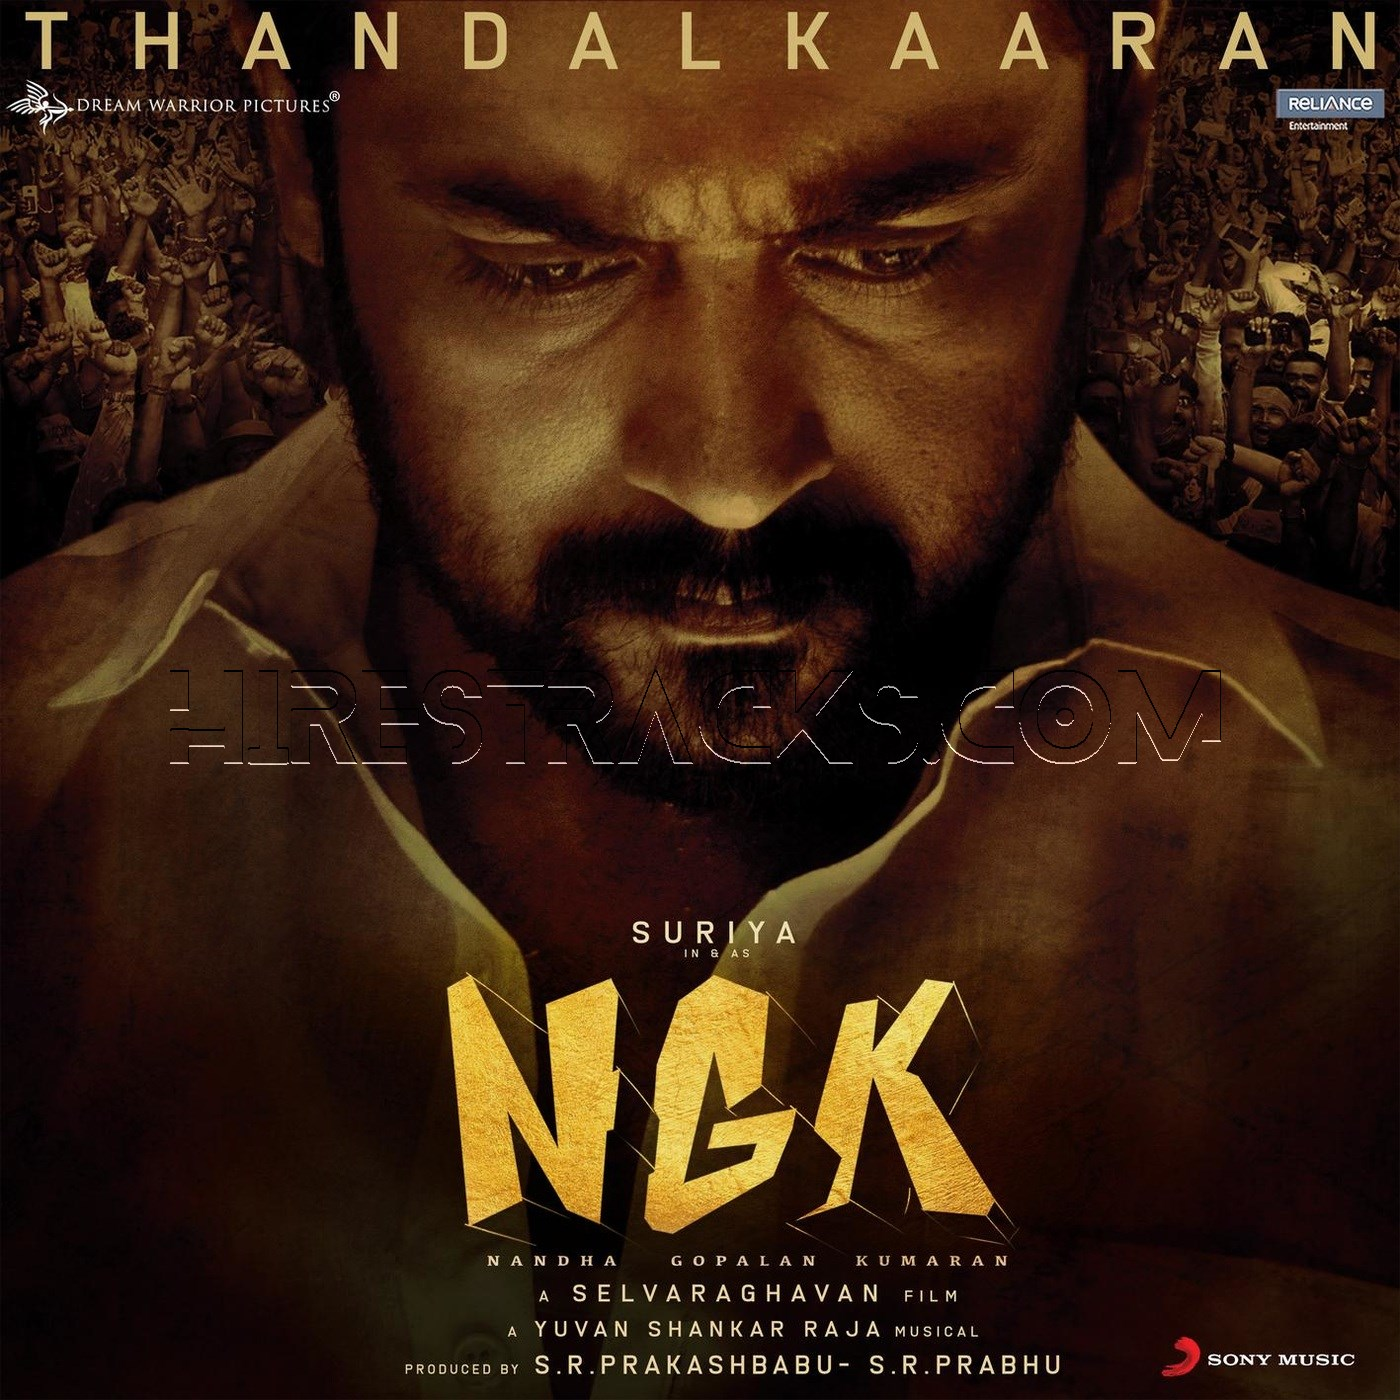 Thandalkaaran (From NGK) – (Single) (2019)